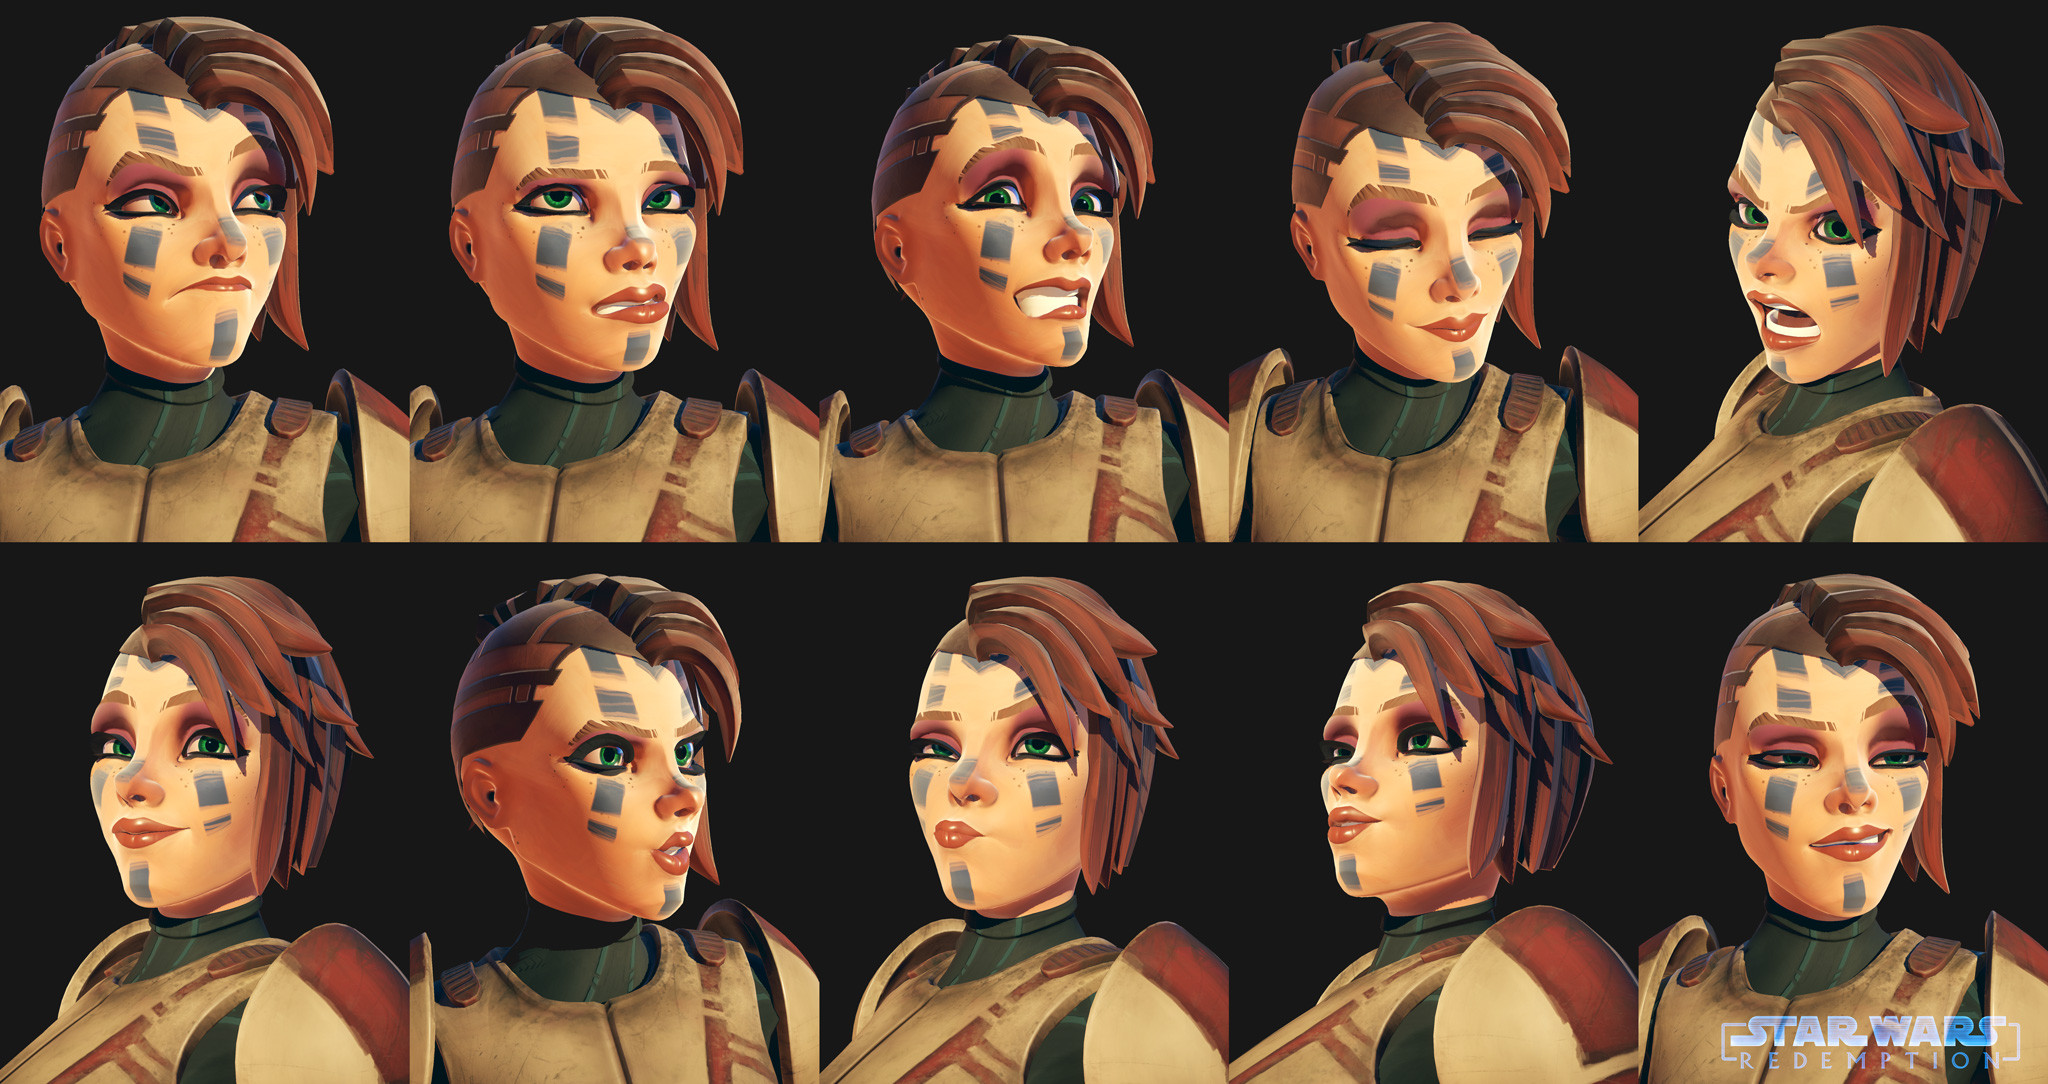 Some Expression Rendered on Marmoset